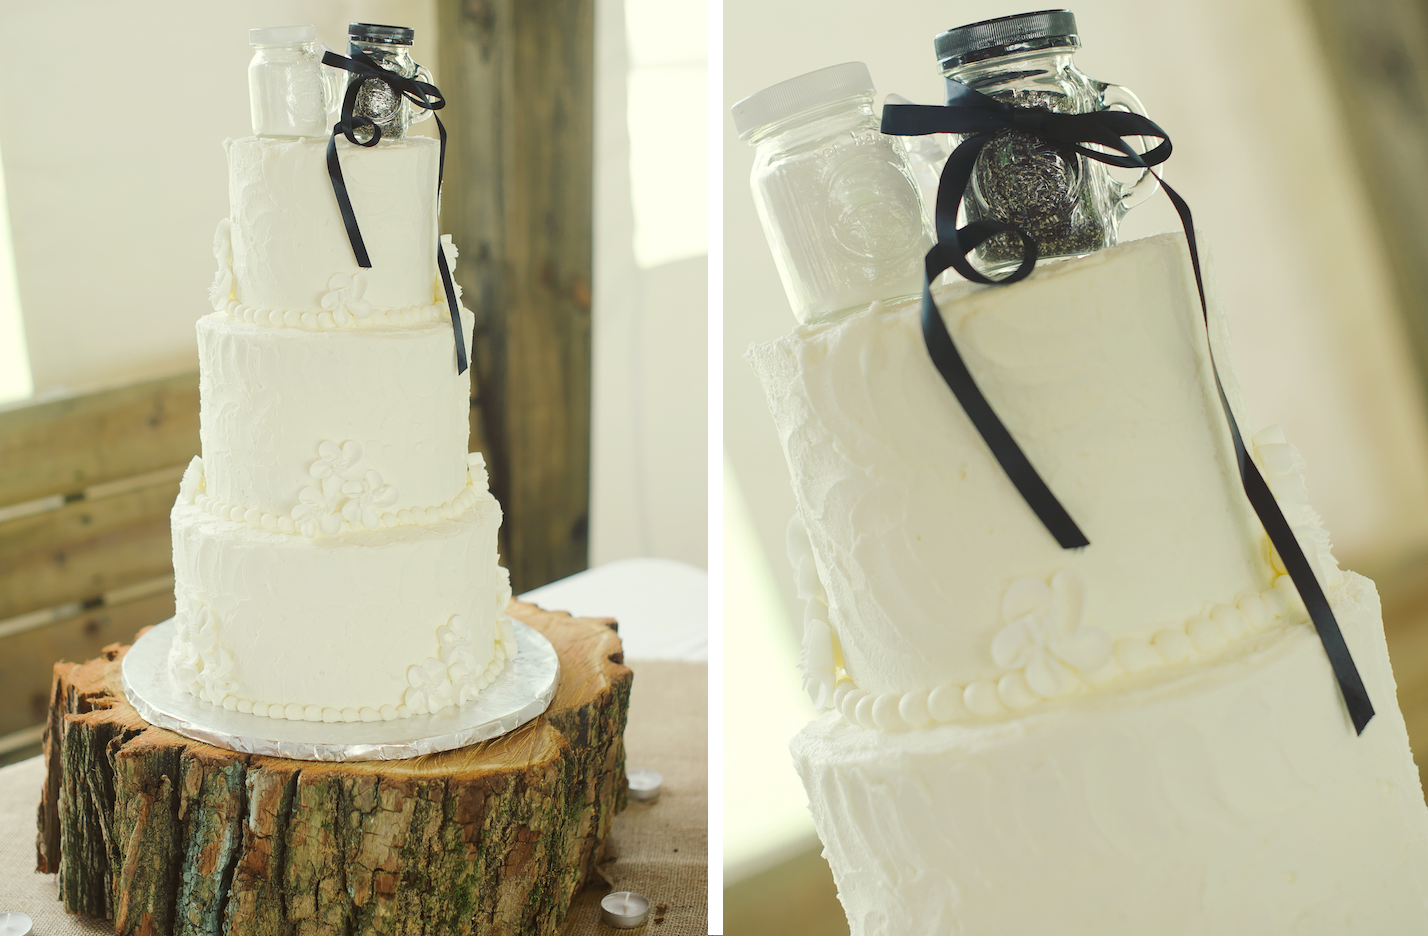 Elegant-rustic-wedding-classic-ivory-wedding-cake-with-cute-cake-topper.original